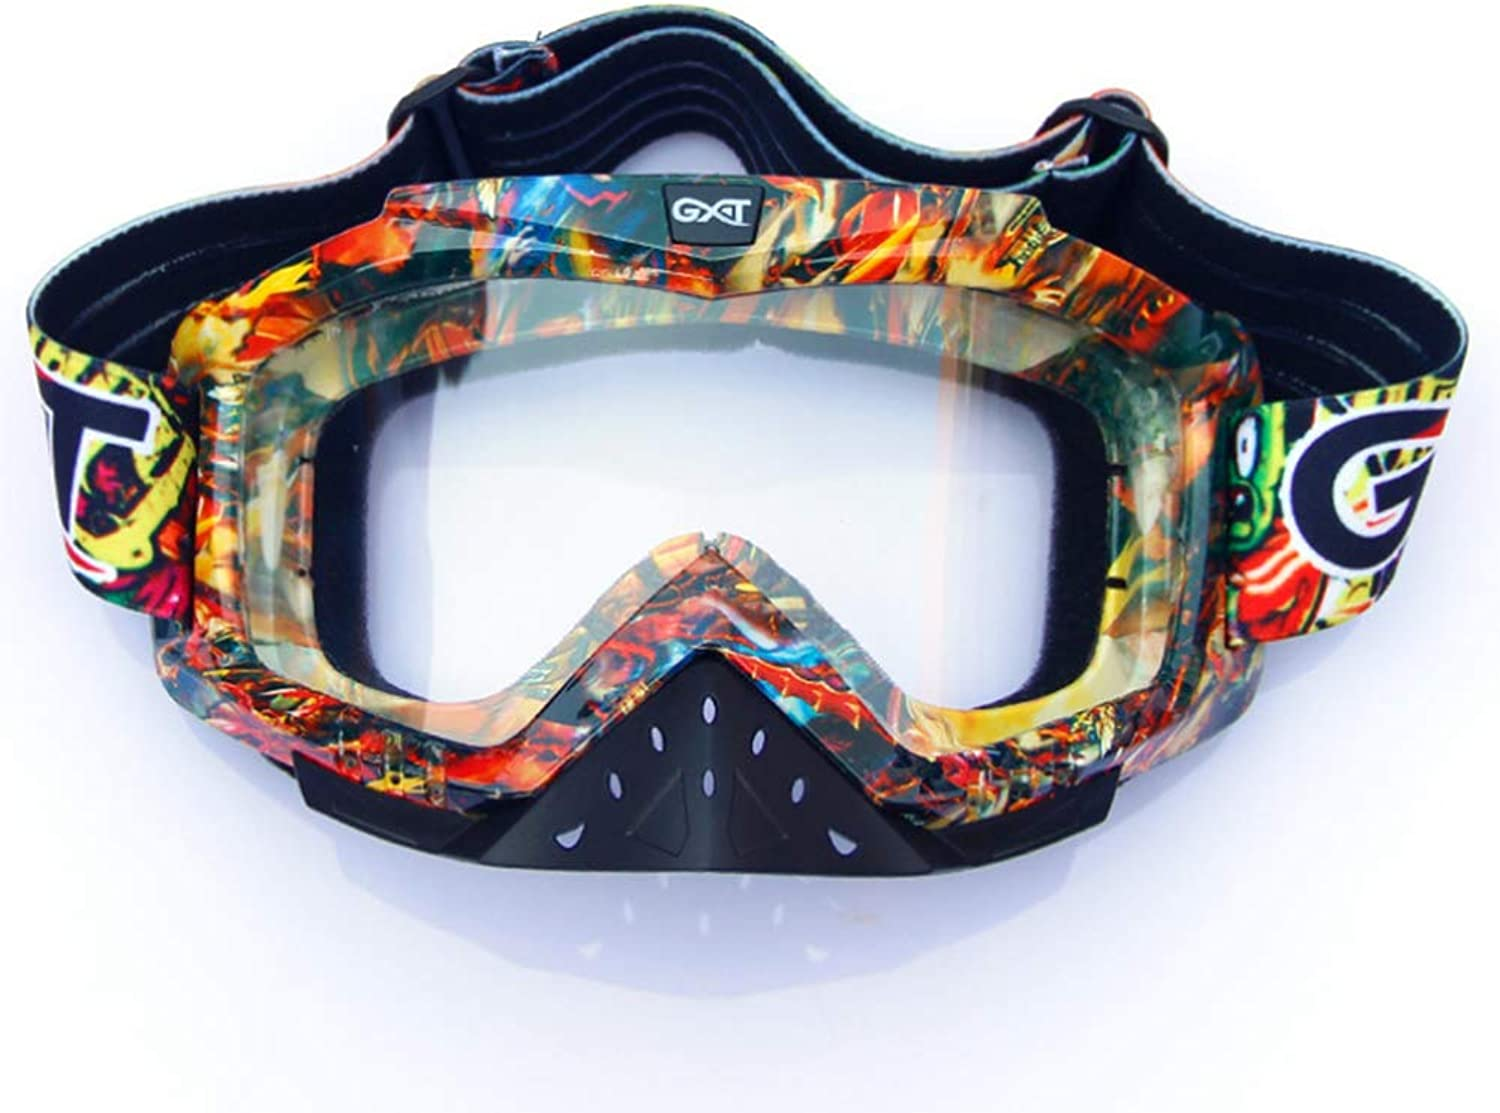 Ski Goggles Skiing Goggles Off-Road Helmet Goggles Motorcycle Riding Outdoor Sports Goggle Ski Windproof Glasses Downhill Goggles